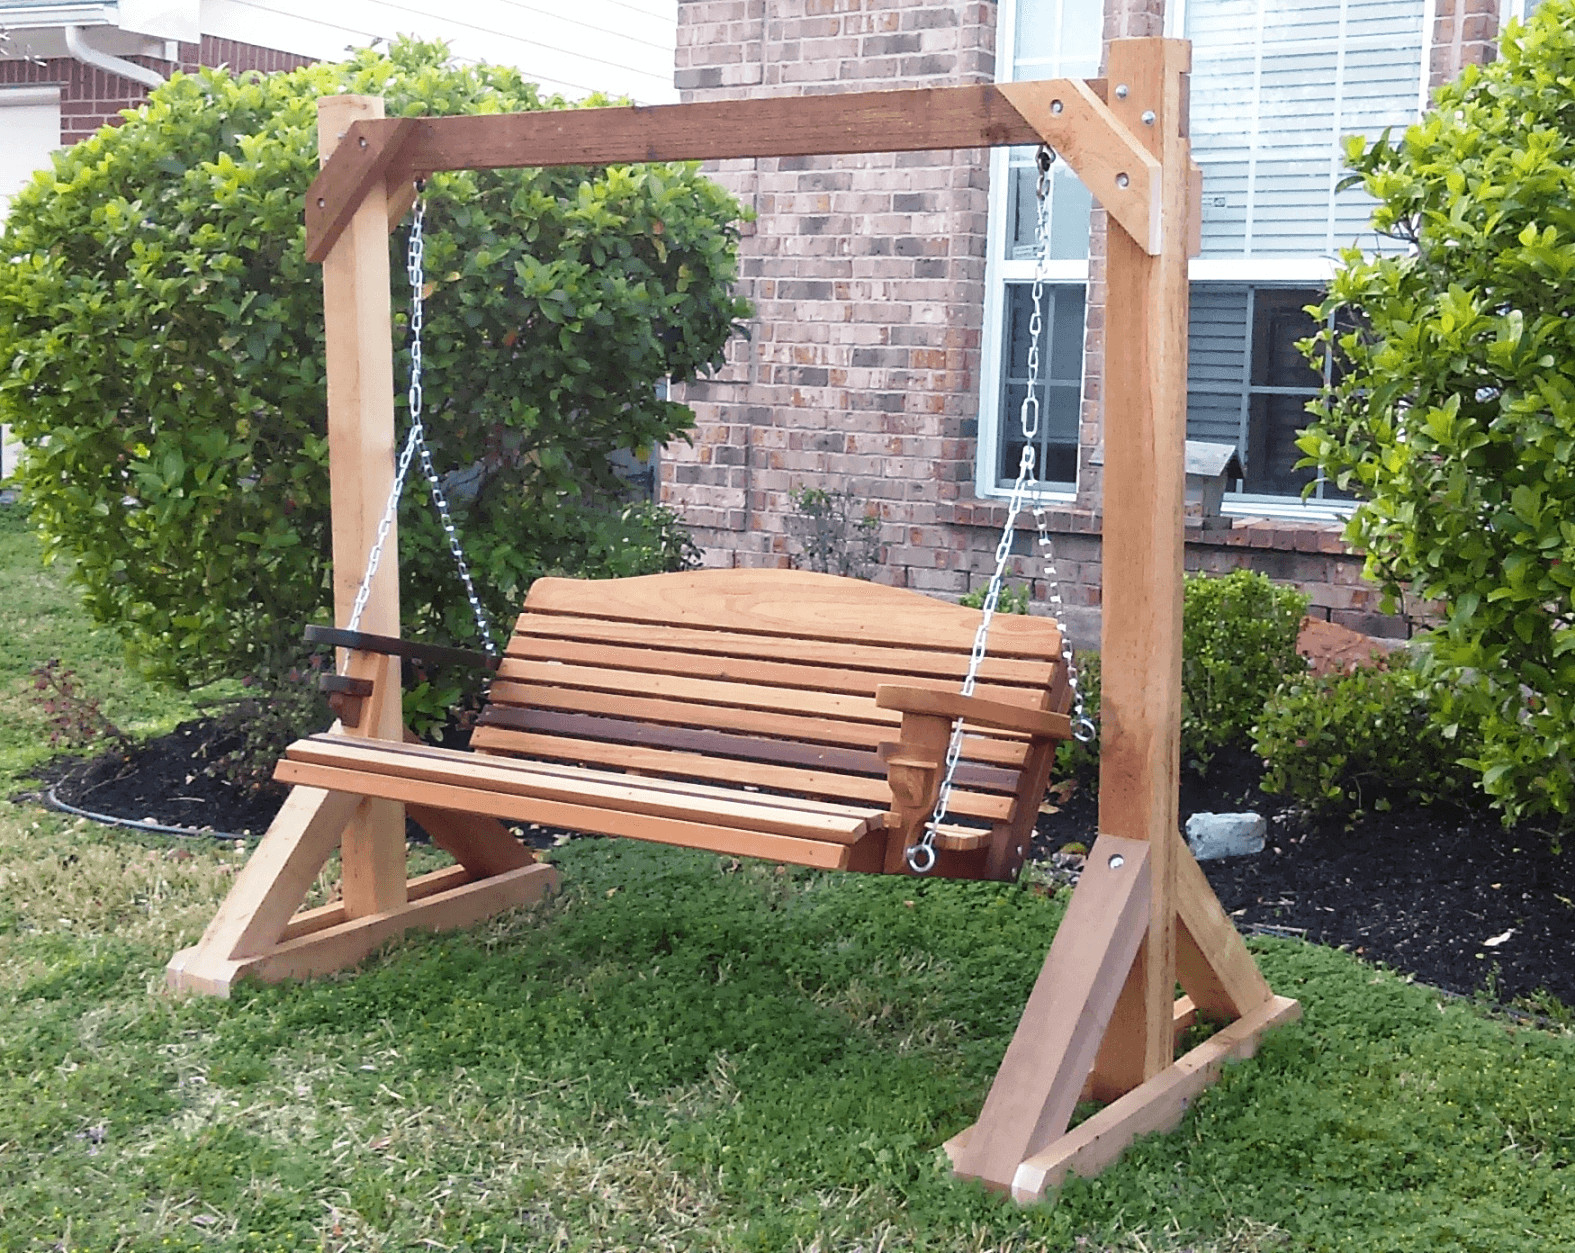 Best ideas about DIY Swing Frame . Save or Pin Simple Tips to Build DIY Wood Porch Swing Frame Plans Now.